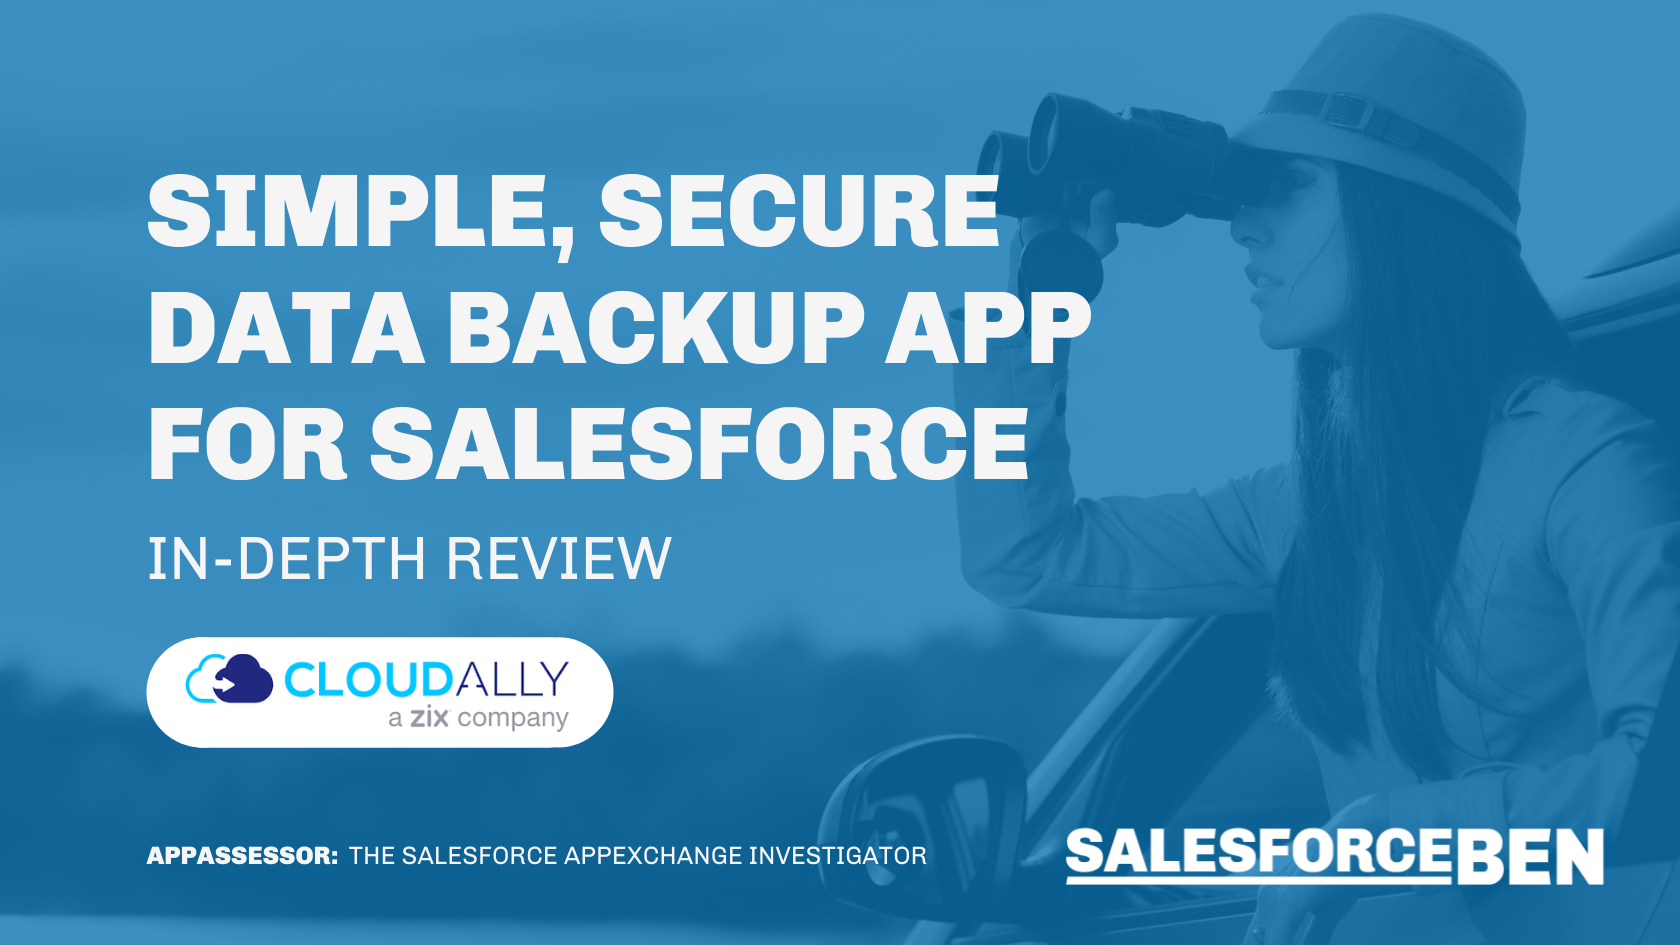 Simple, Secure Data Backup App for Salesforce [In-Depth Review]